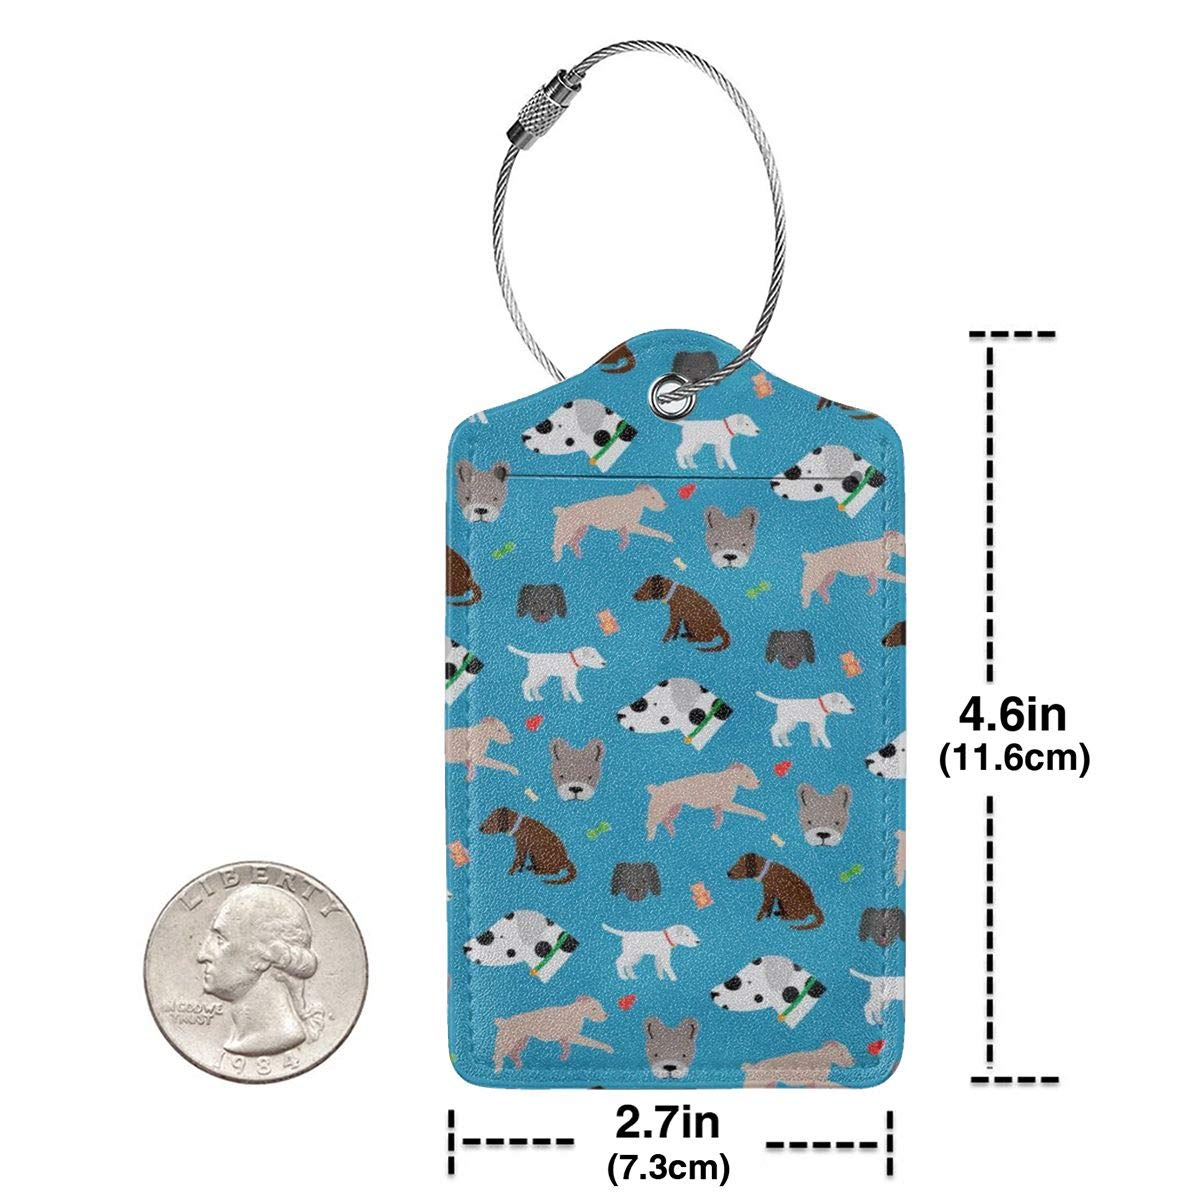 Cute Dog And Dog Face Luggage Tag Label Travel Bag Label With Privacy Cover Luggage Tag Leather Personalized Suitcase Tag Travel Accessories